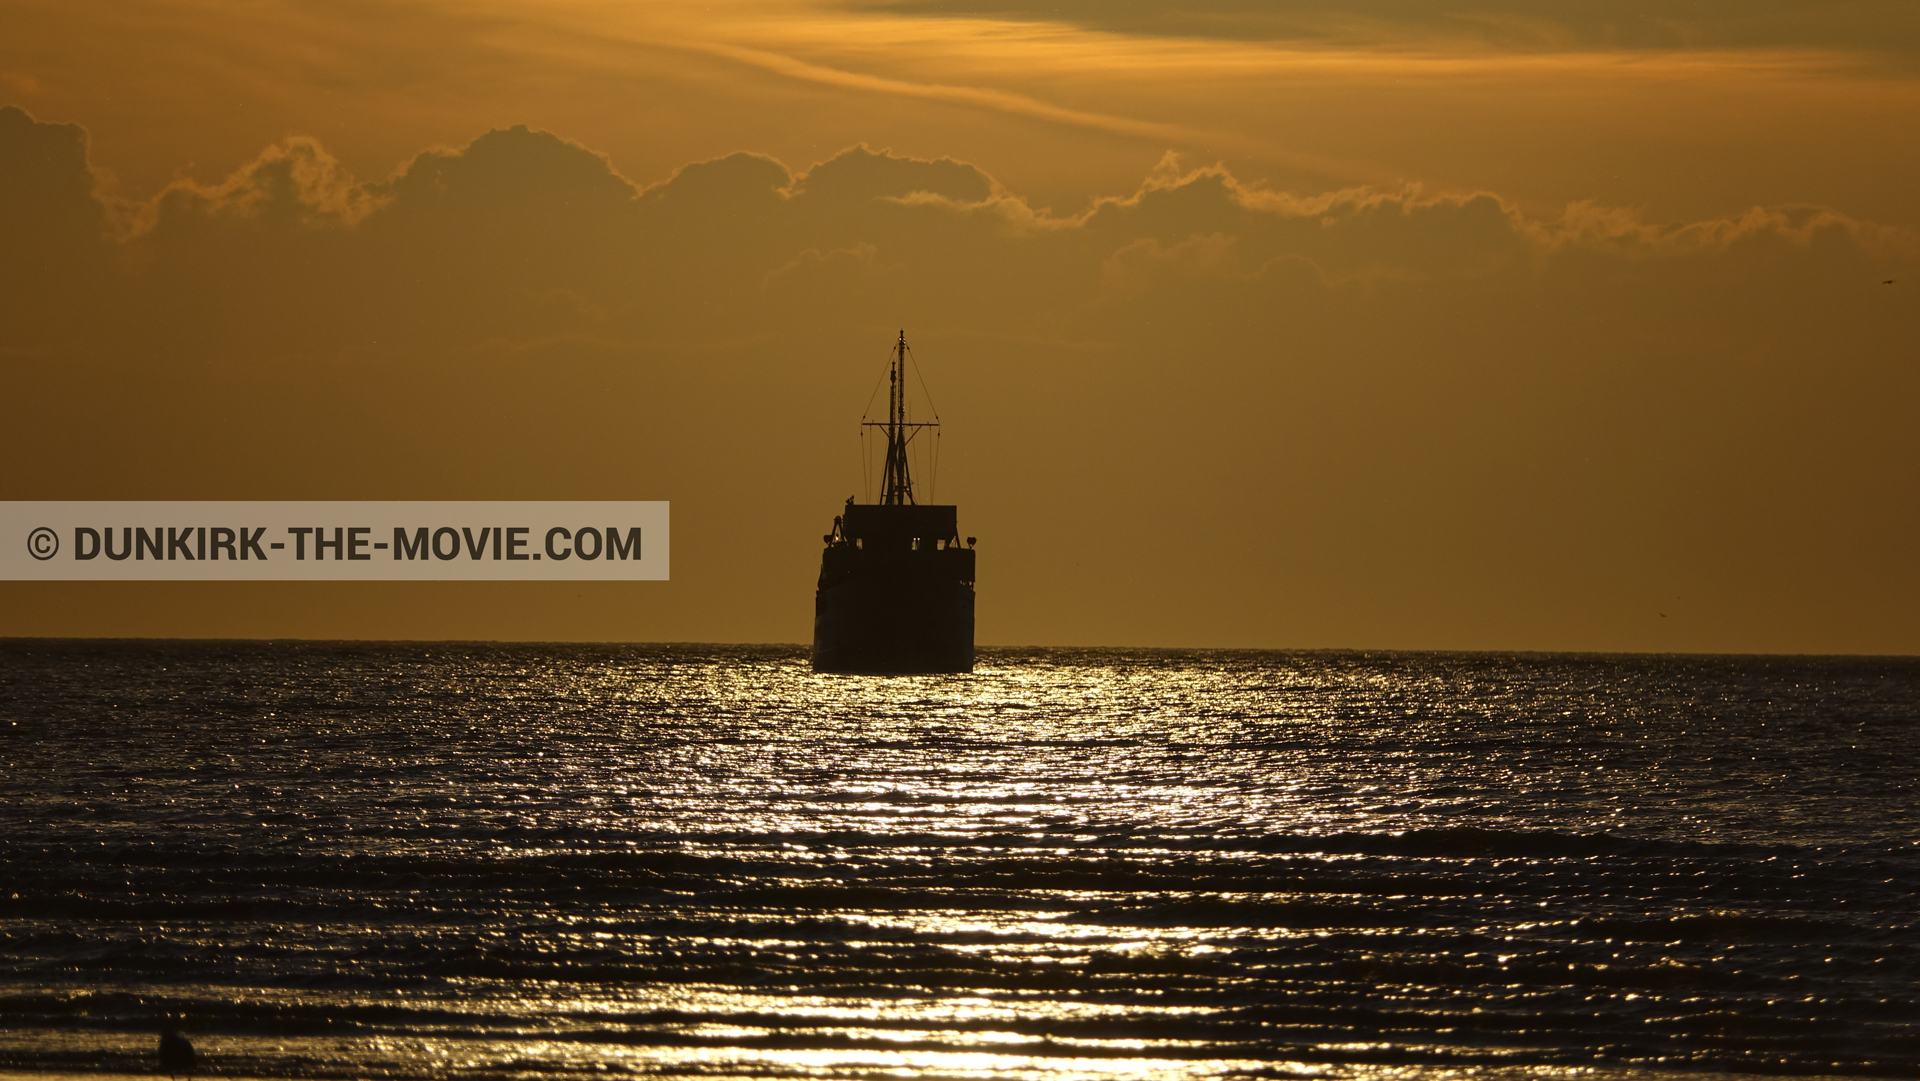 Picture with boat, orange sky,  from behind the scene of the Dunkirk movie by Nolan